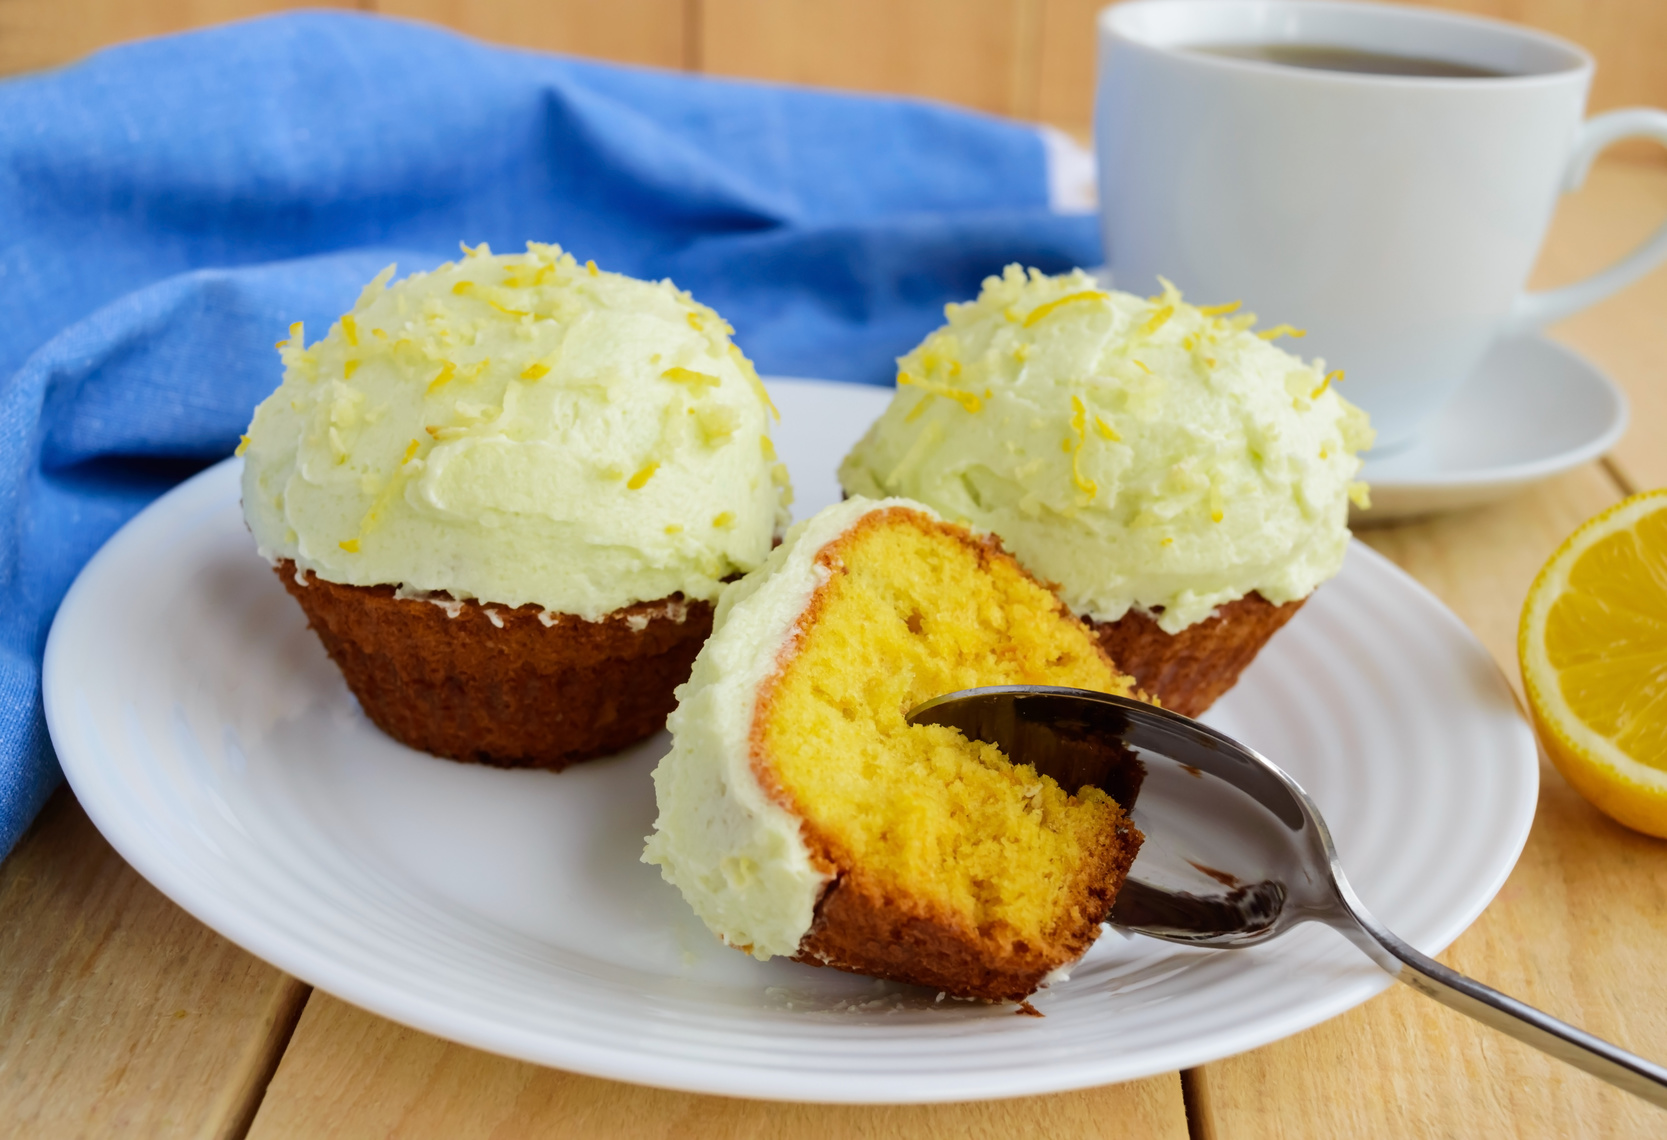 Light lemon cupcakes muffins on wooden background and a cup of tea.